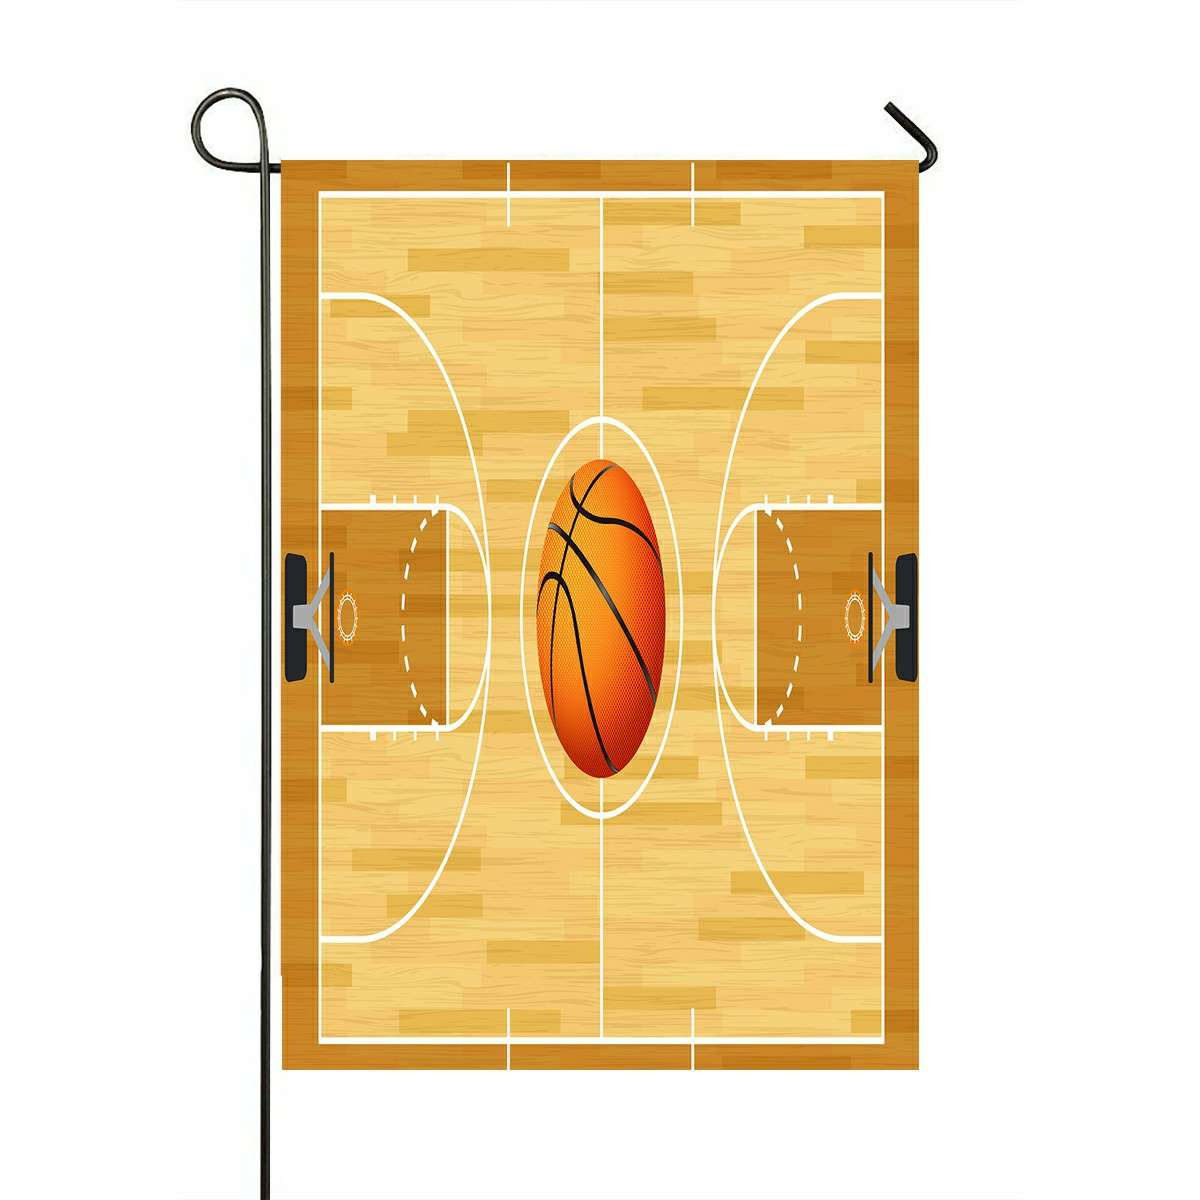 Eczjnt Basketball Court Basketball In The Center Court Outdoor Flag Home Party Garden Decor 28x40 Inch Walmart Com Walmart Com